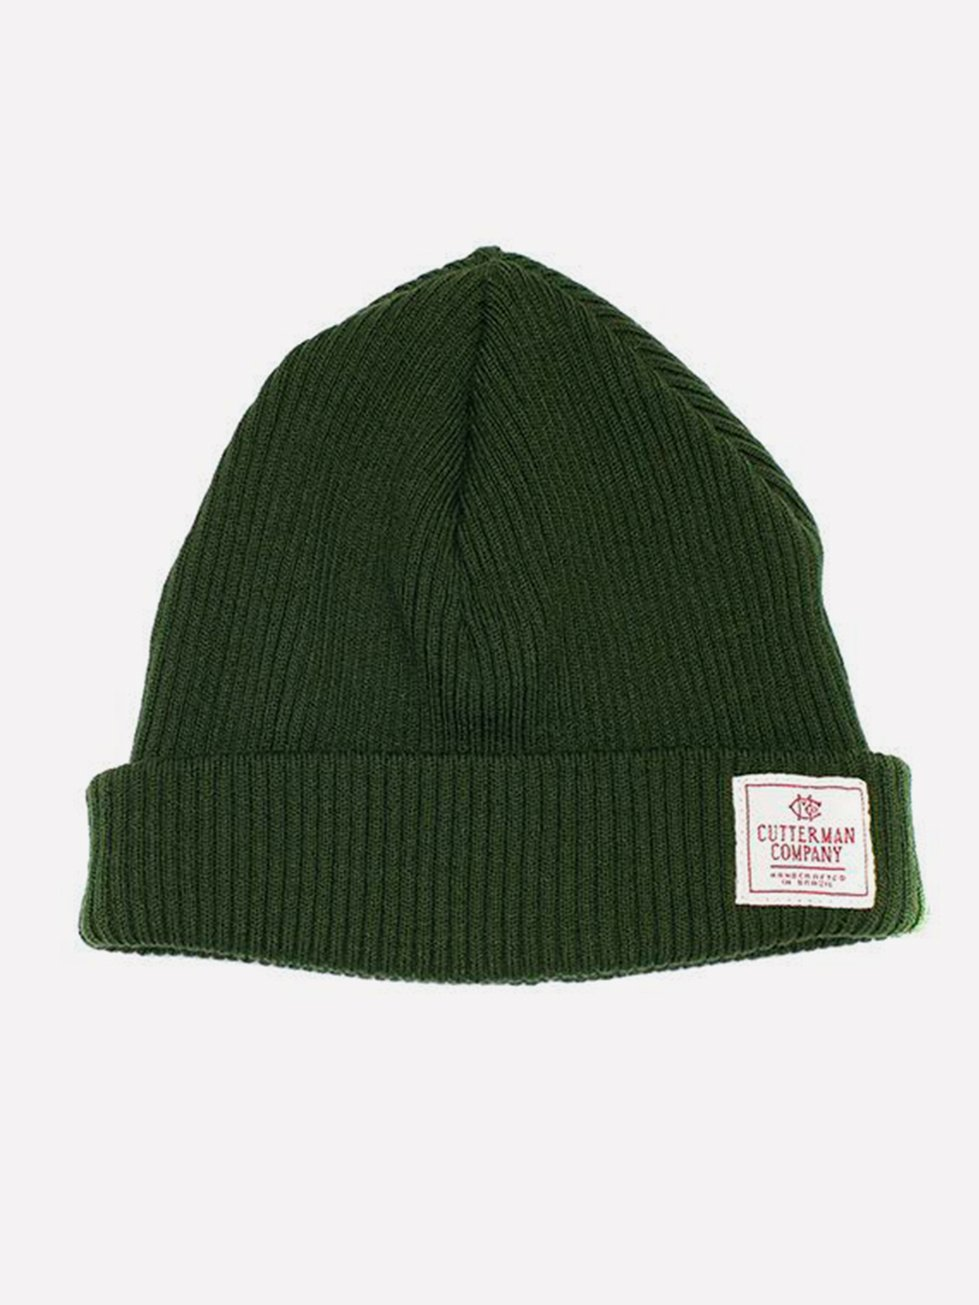 Foto do Gorro Cutterman Co.SAYLOR - Verde